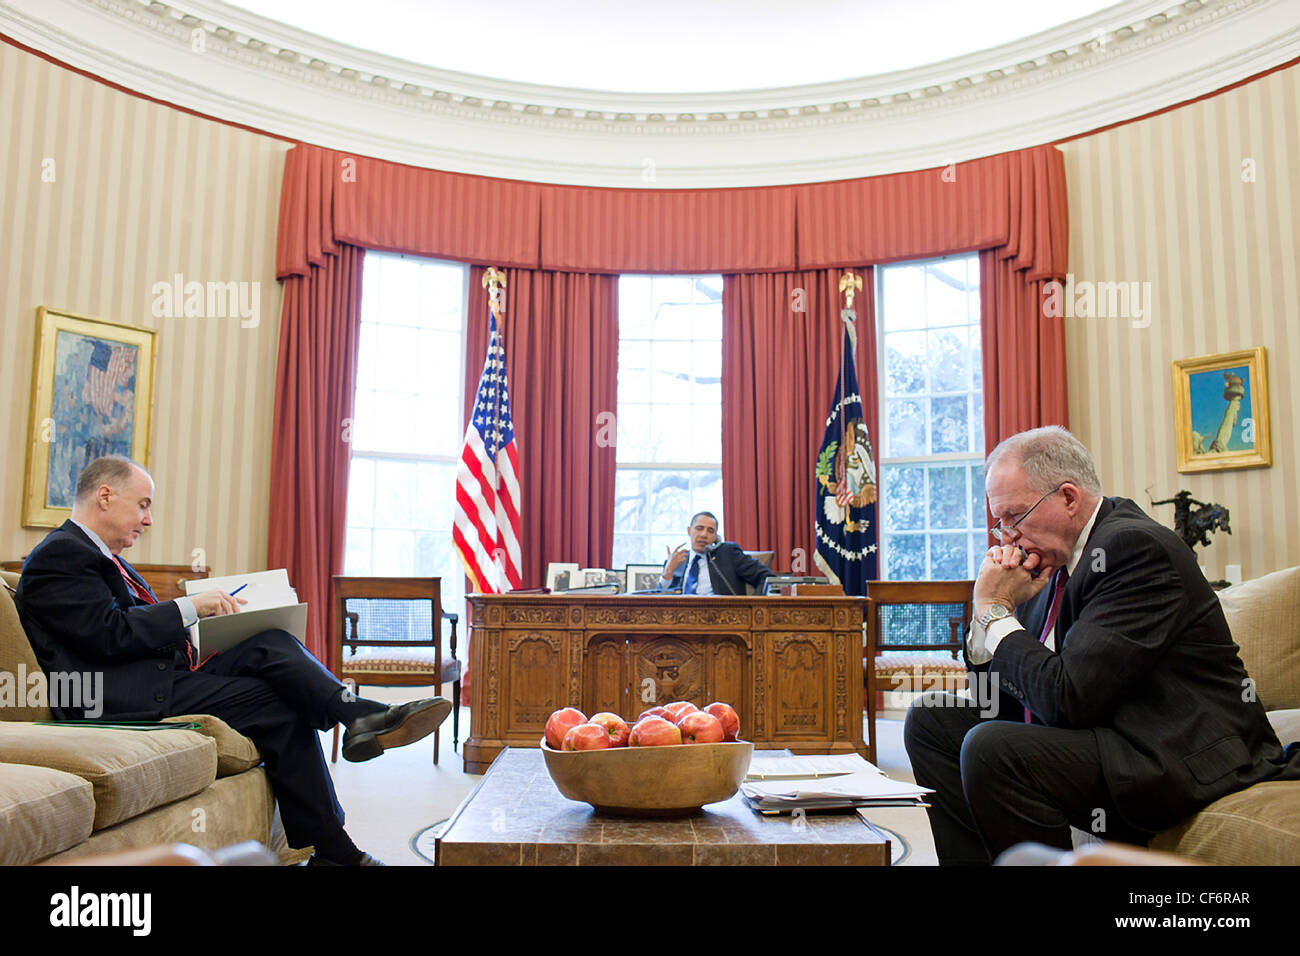 National Security Advisor Tom Donilon and John Brennan, Assistant to the President for Homeland Security and Counterterrorism, - Stock Image